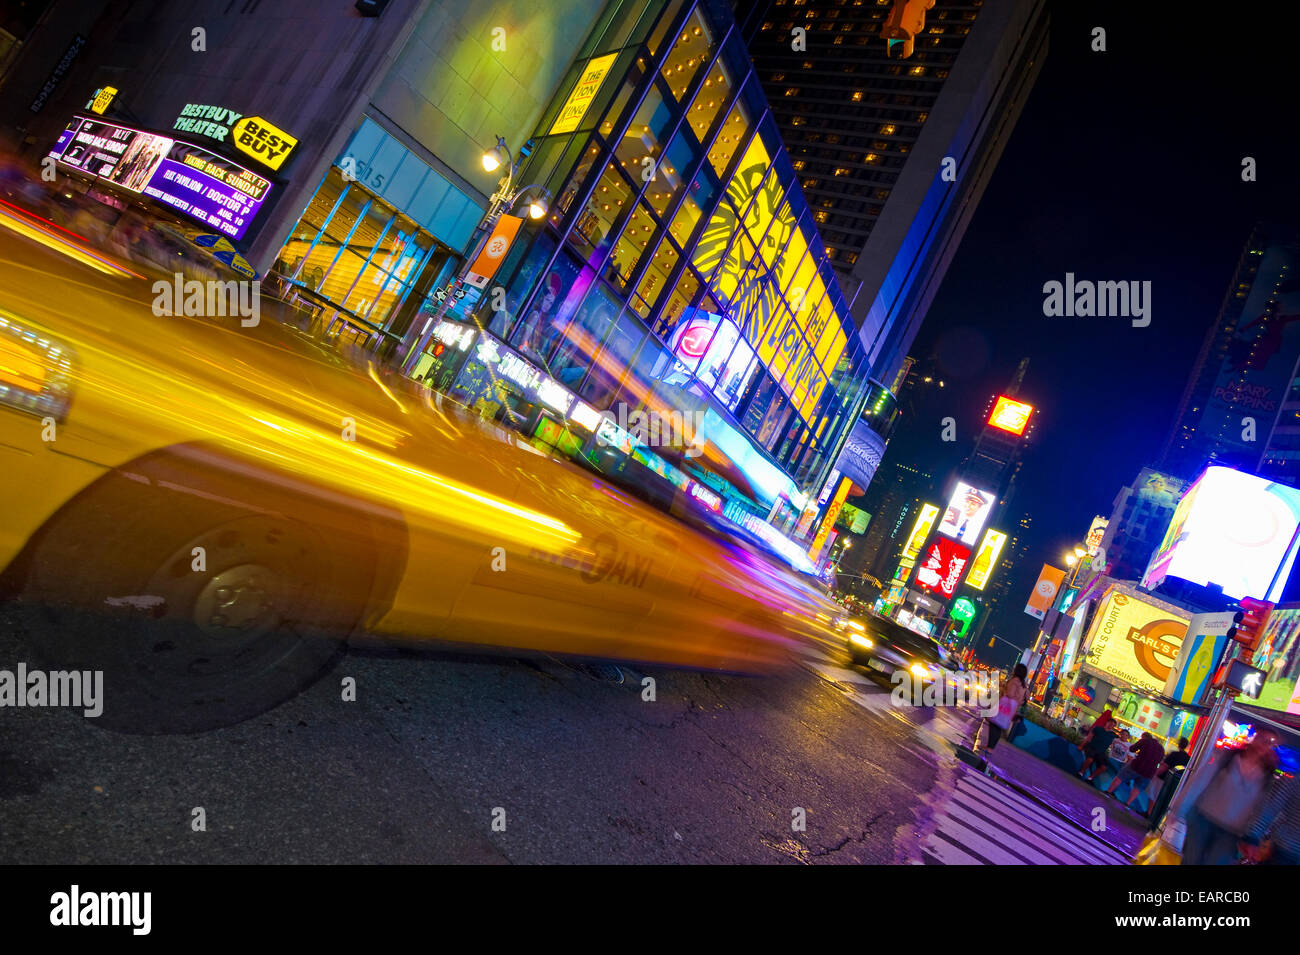 Neon signs and a taxi with motion blur in Times Square, Manhattan, New York City, New York, United States - Stock Image